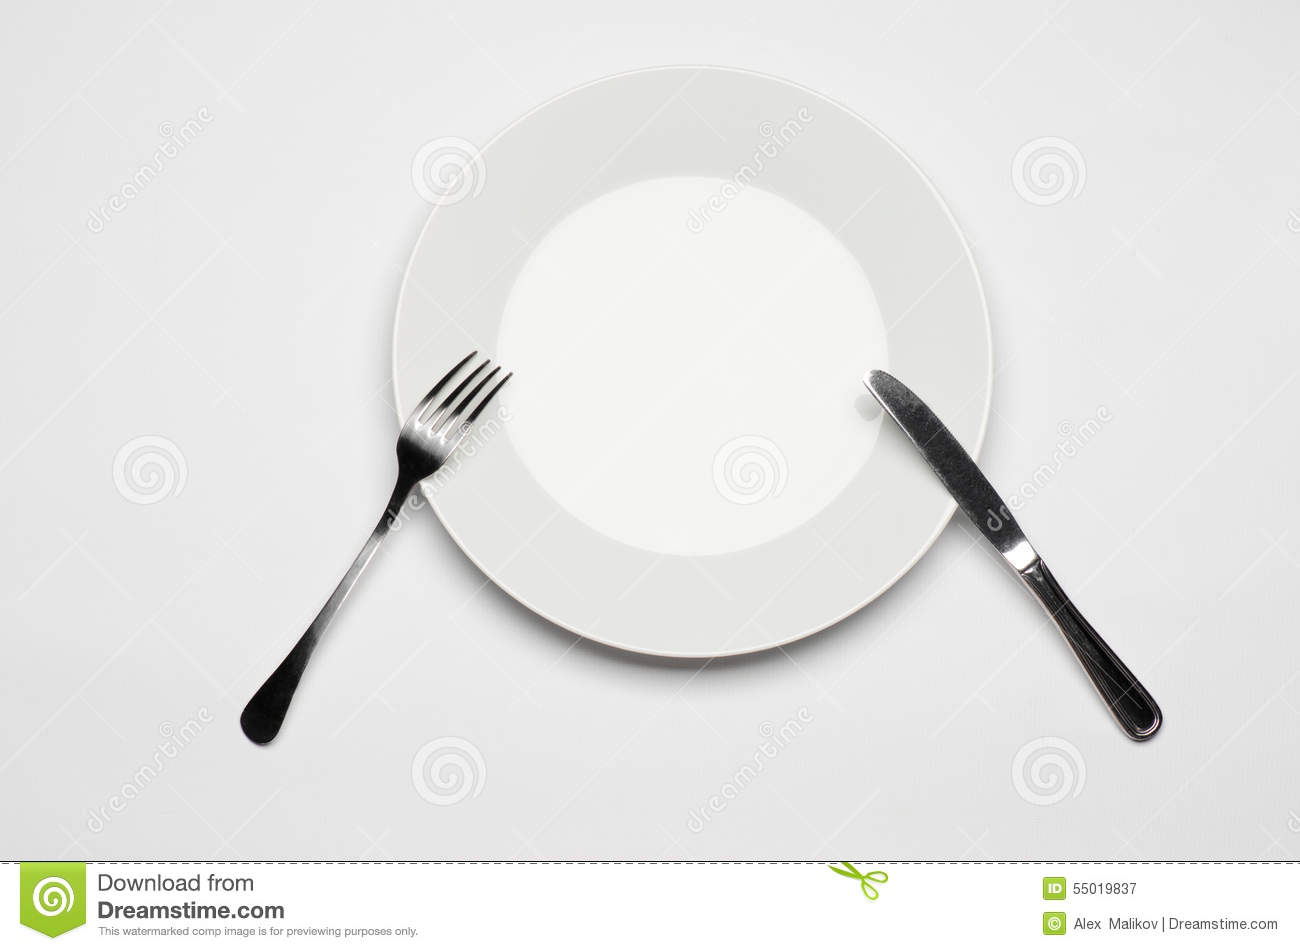 how to use cutlery properly video